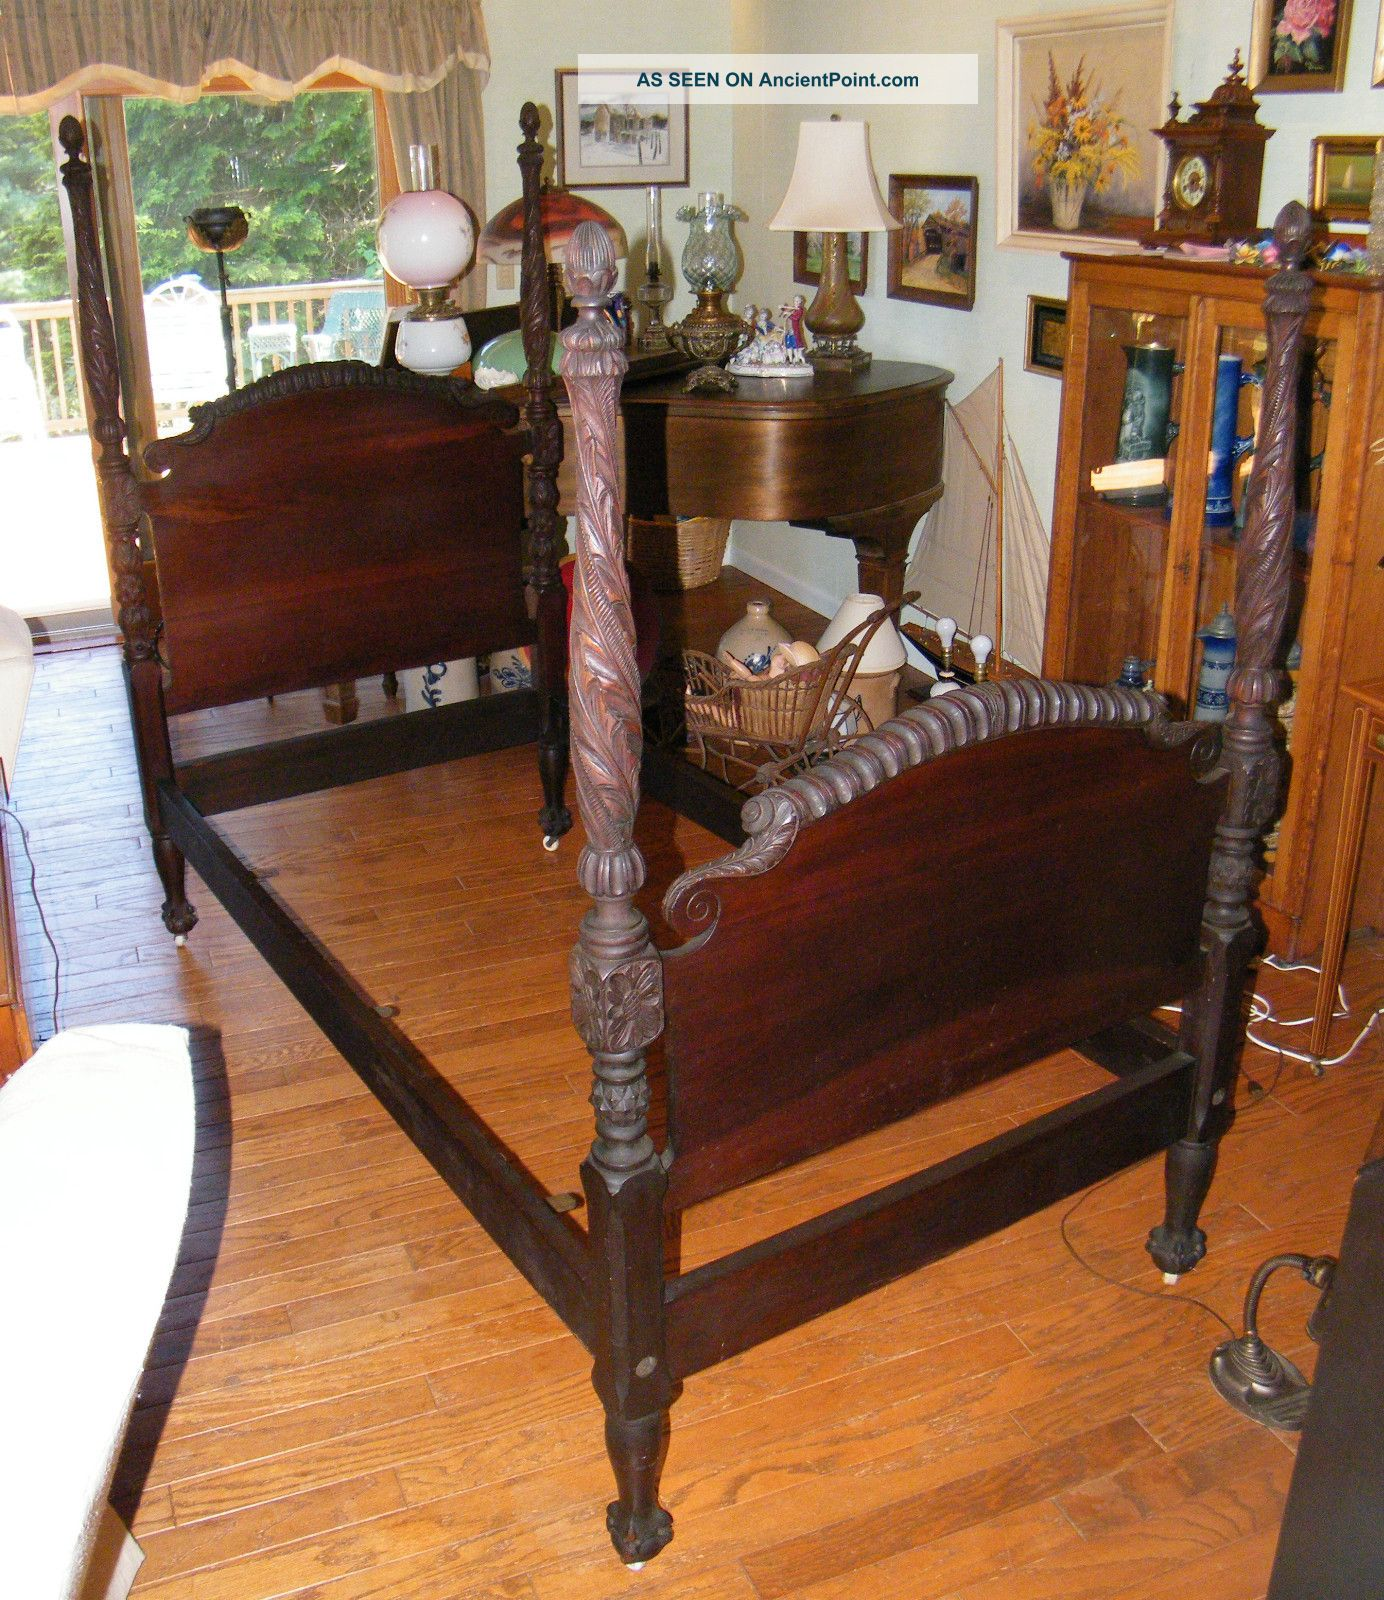 Antique C1900 - 1940 Chippendale Solid Mahogany 4 - Poster Twin Single Bed  Carved - Antique C1900 - 1940 Chippendale Solid Mahogany 4 - Poster Twin